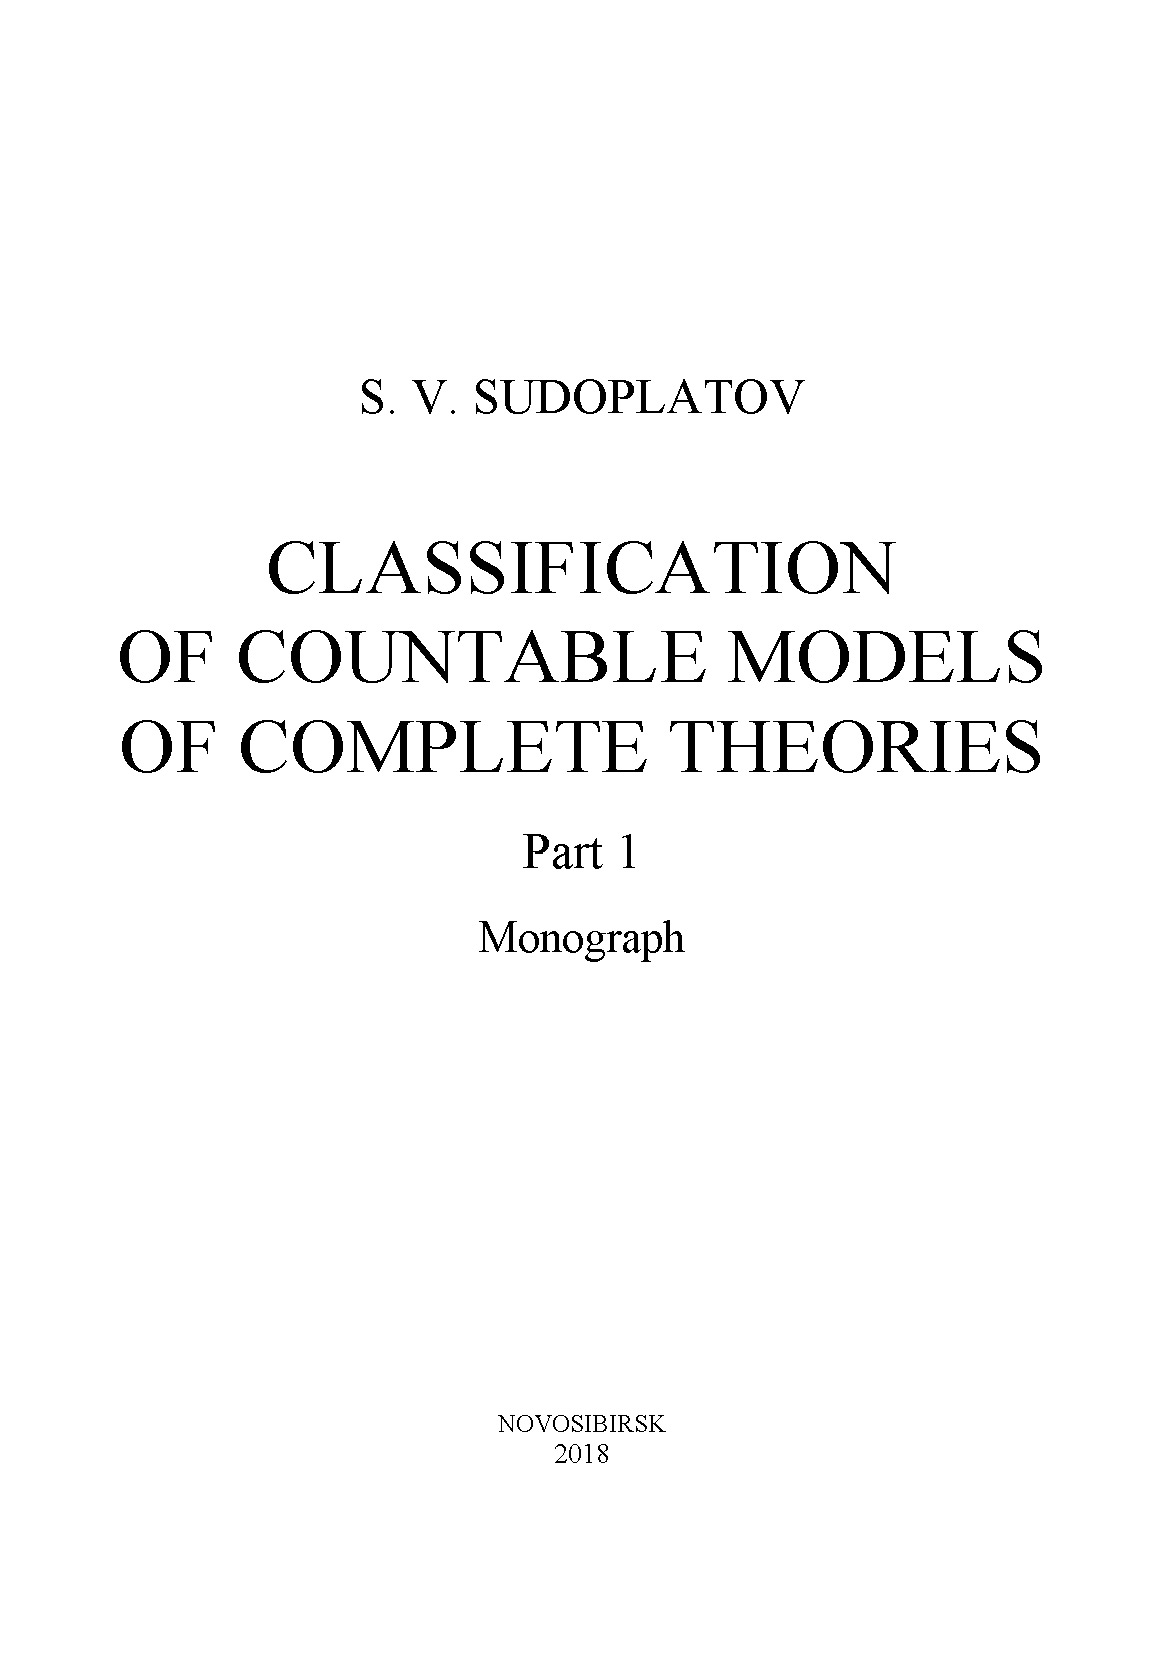 Classification of countable models of complete theories. Рart 1